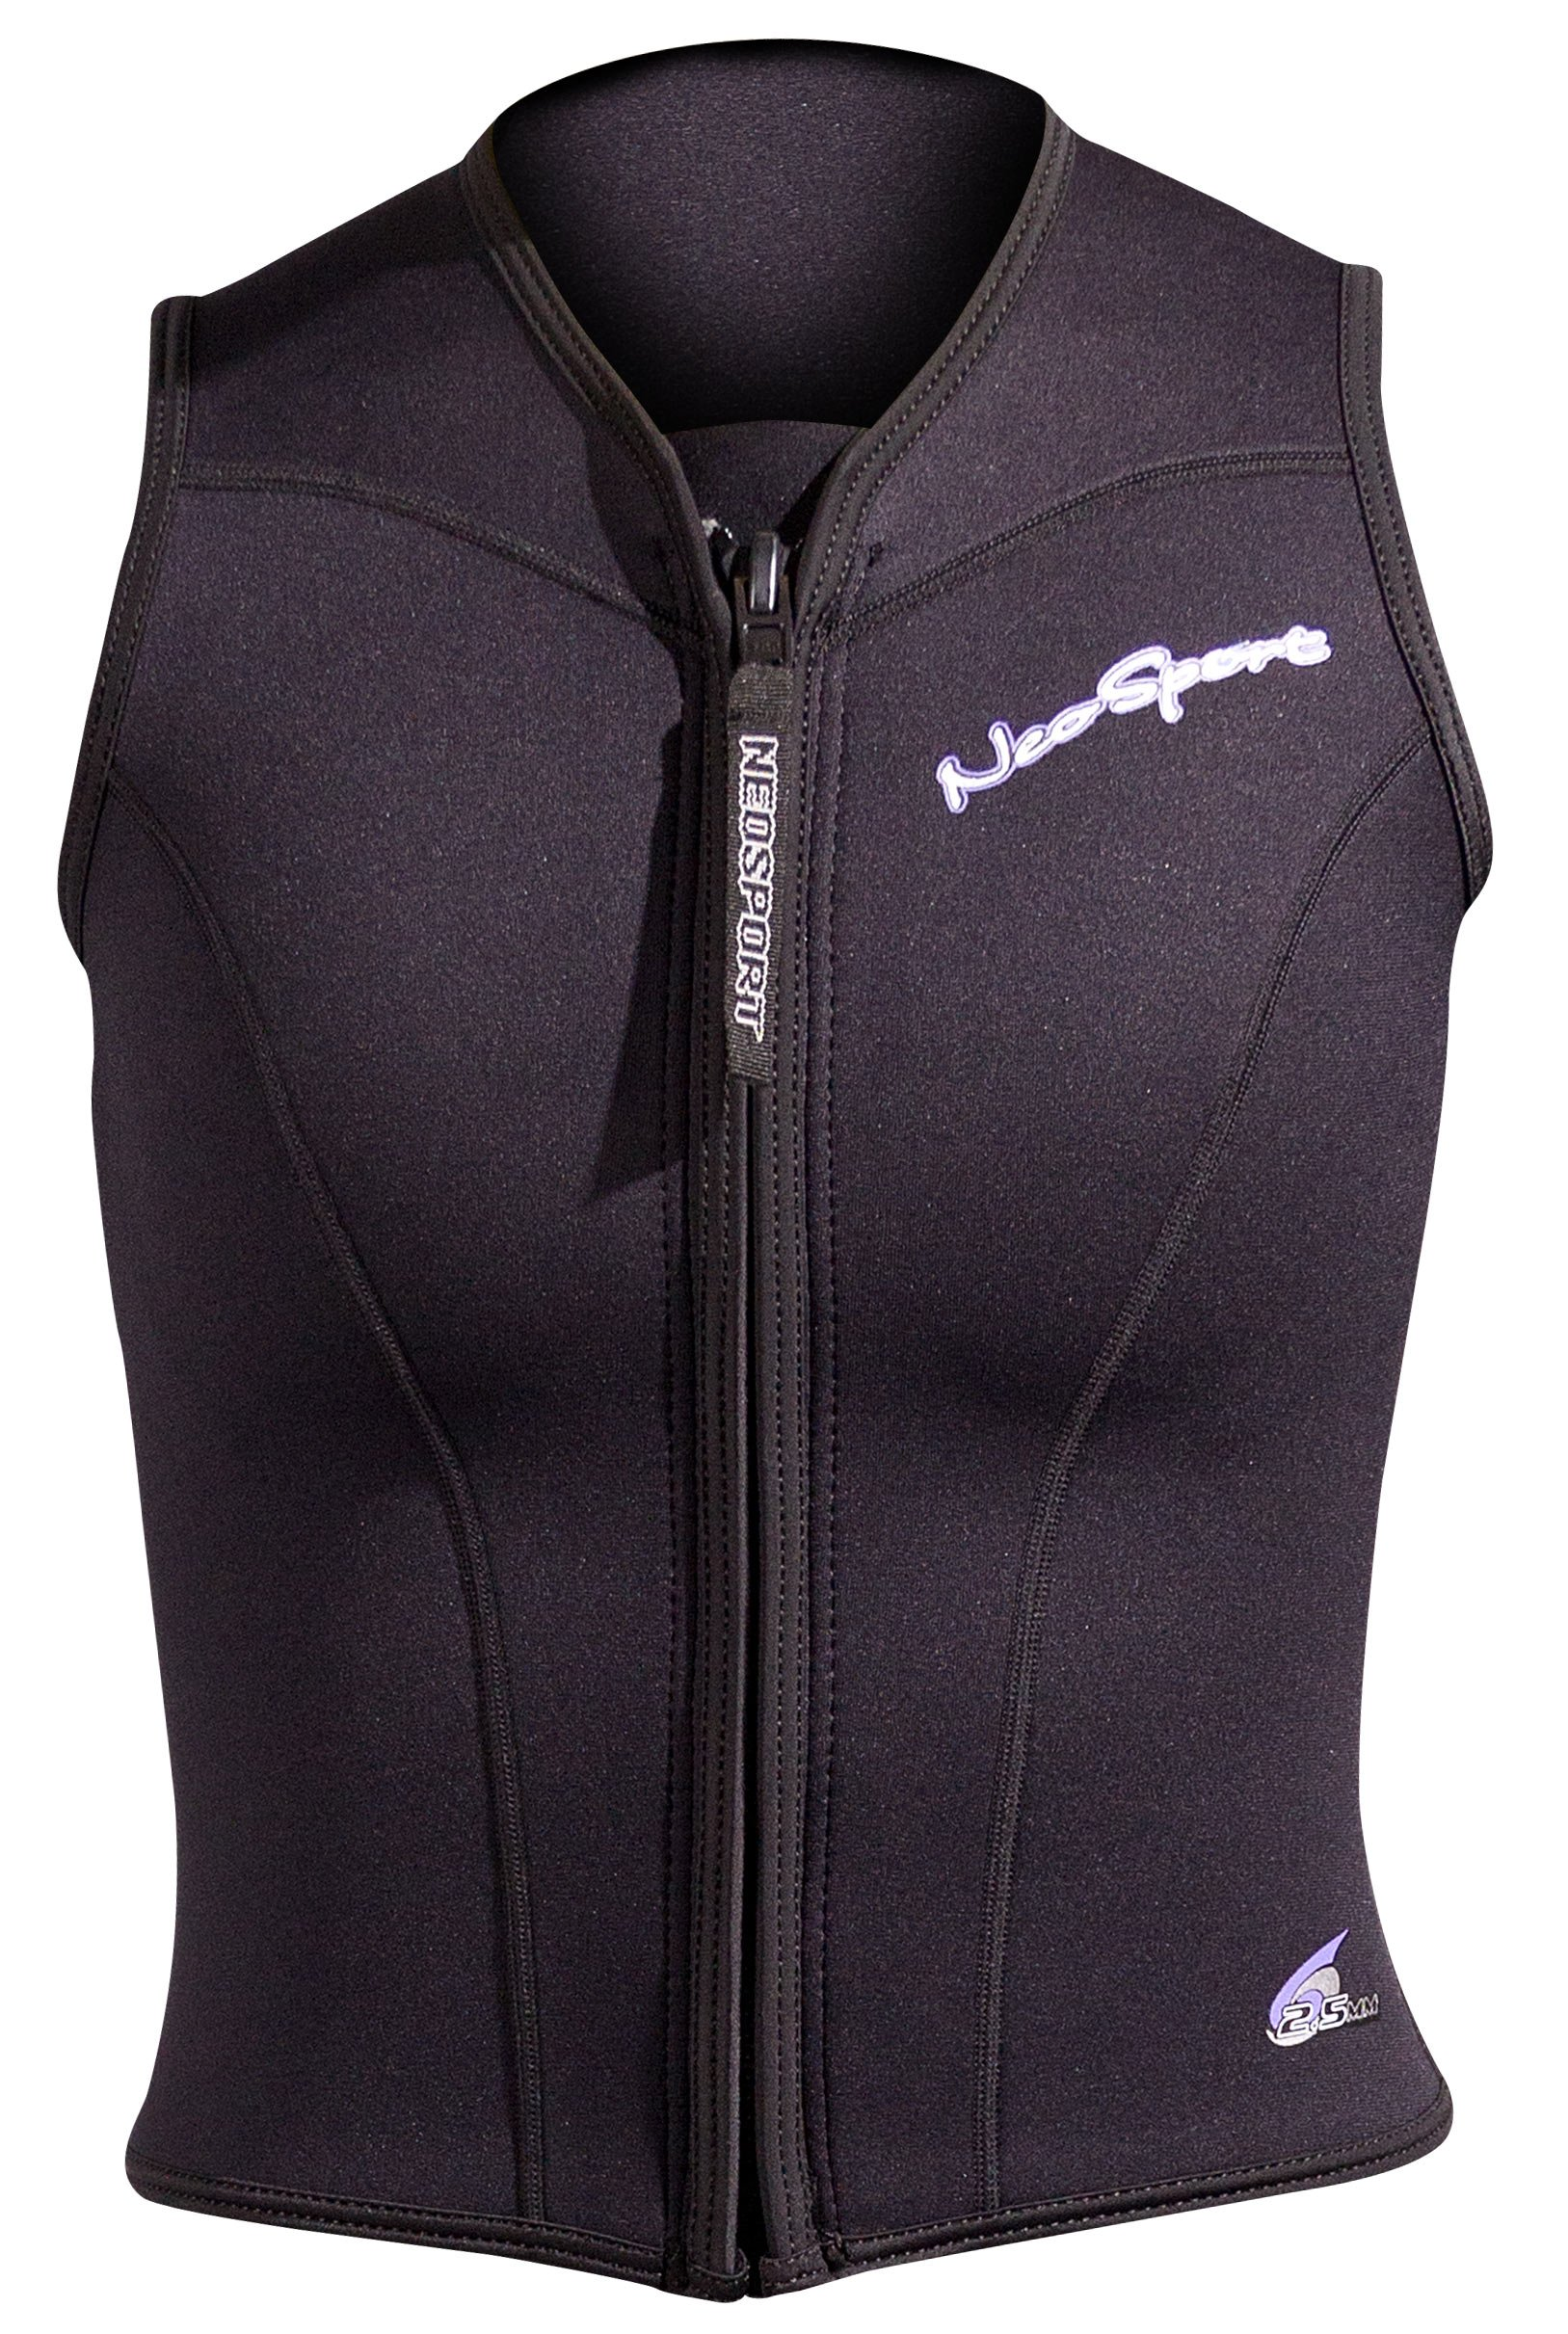 NeoSport Wetsuits Women's Premium Neoprene 2.5mm Zipper Vest, Black, 10 - Diving, Snorkeling & Wakeboarding by Neo-Sport